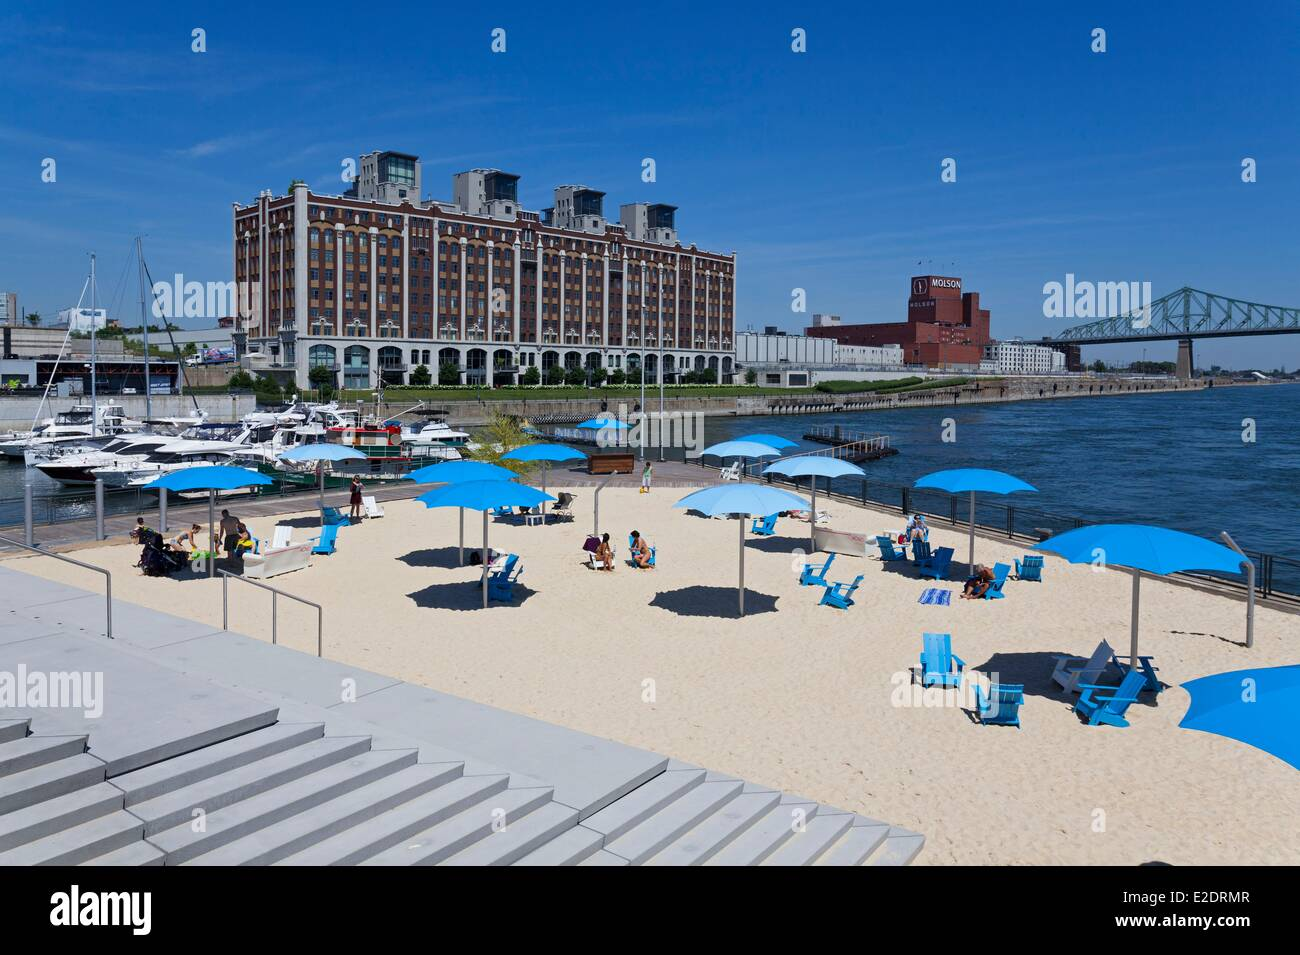 Canada Quebec province Montreal Old Port the beach La plage de l'Horloge urban concept inspired by Paris Plages - Stock Image